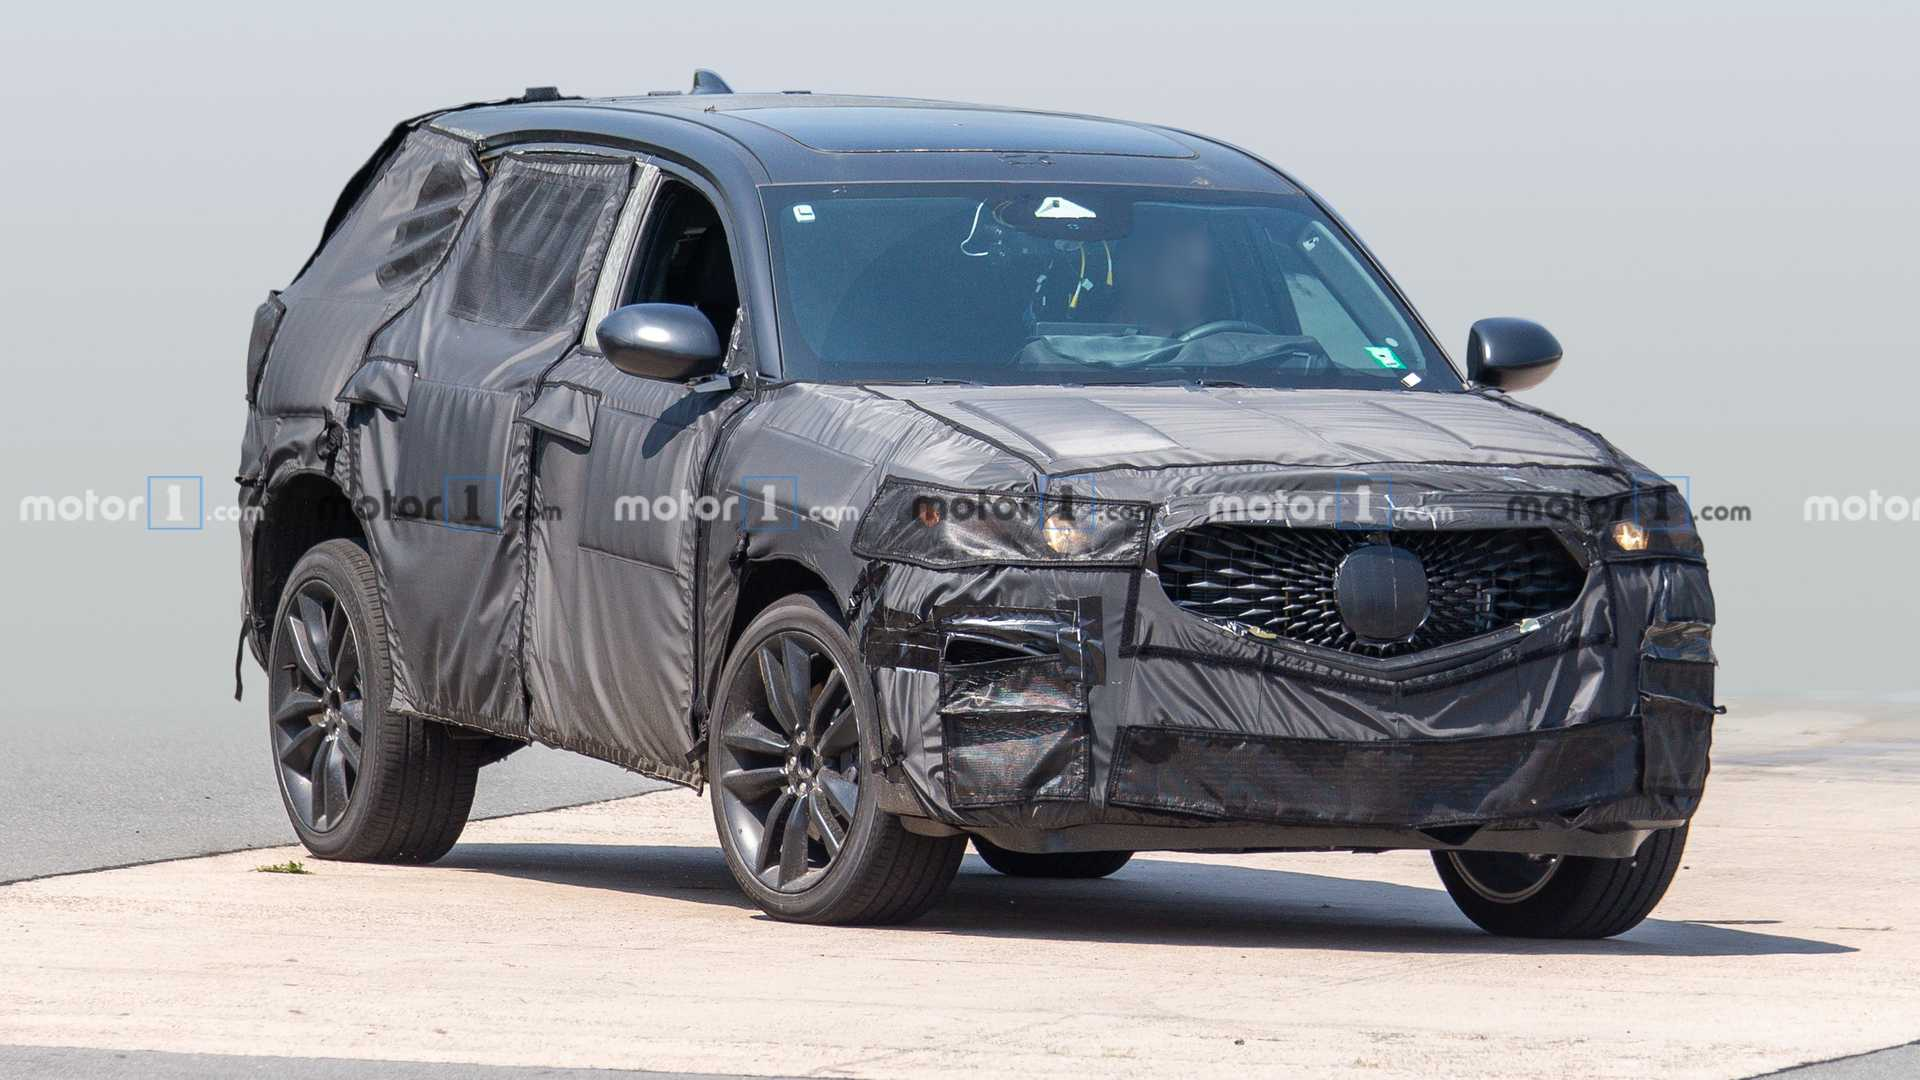 48 Best Review 2020 Acura Mdx Spy Shots Pricing with 2020 Acura Mdx Spy Shots